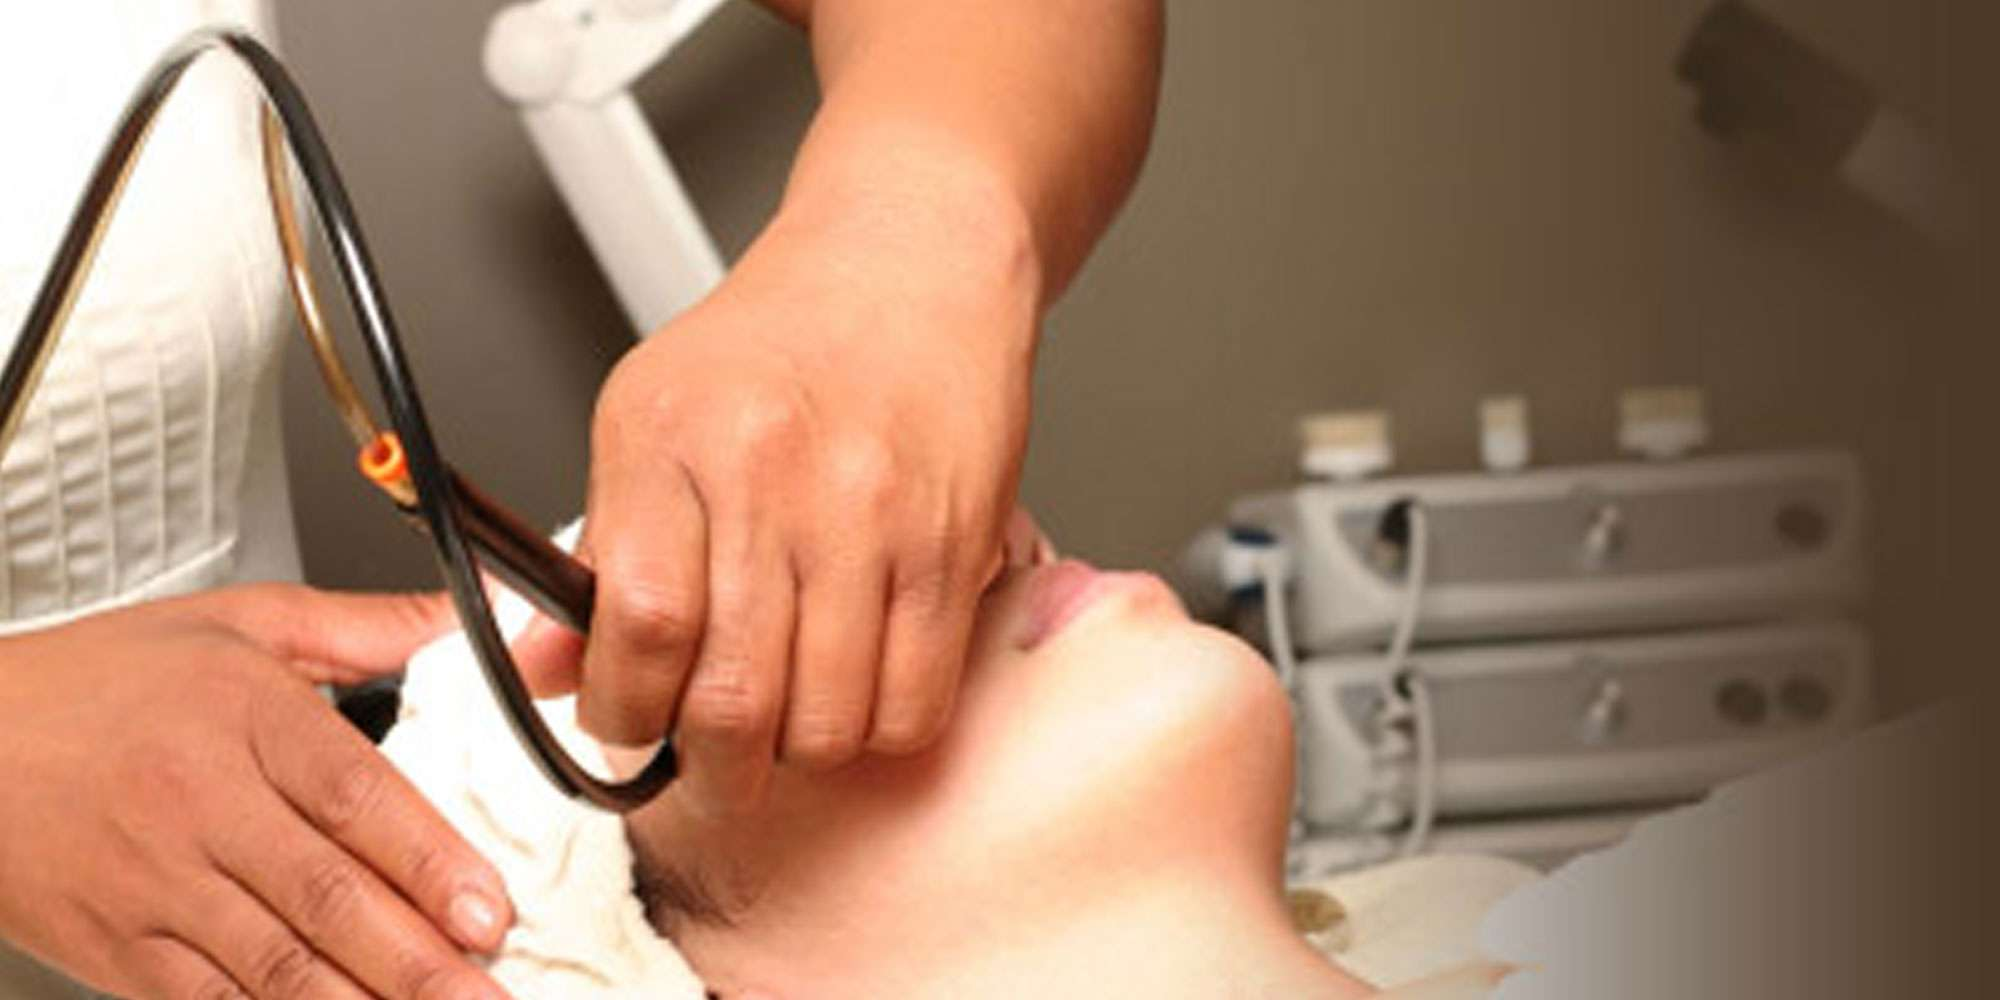 Laser-Hair-Removal-Best-price-quality-Toronto-GTA